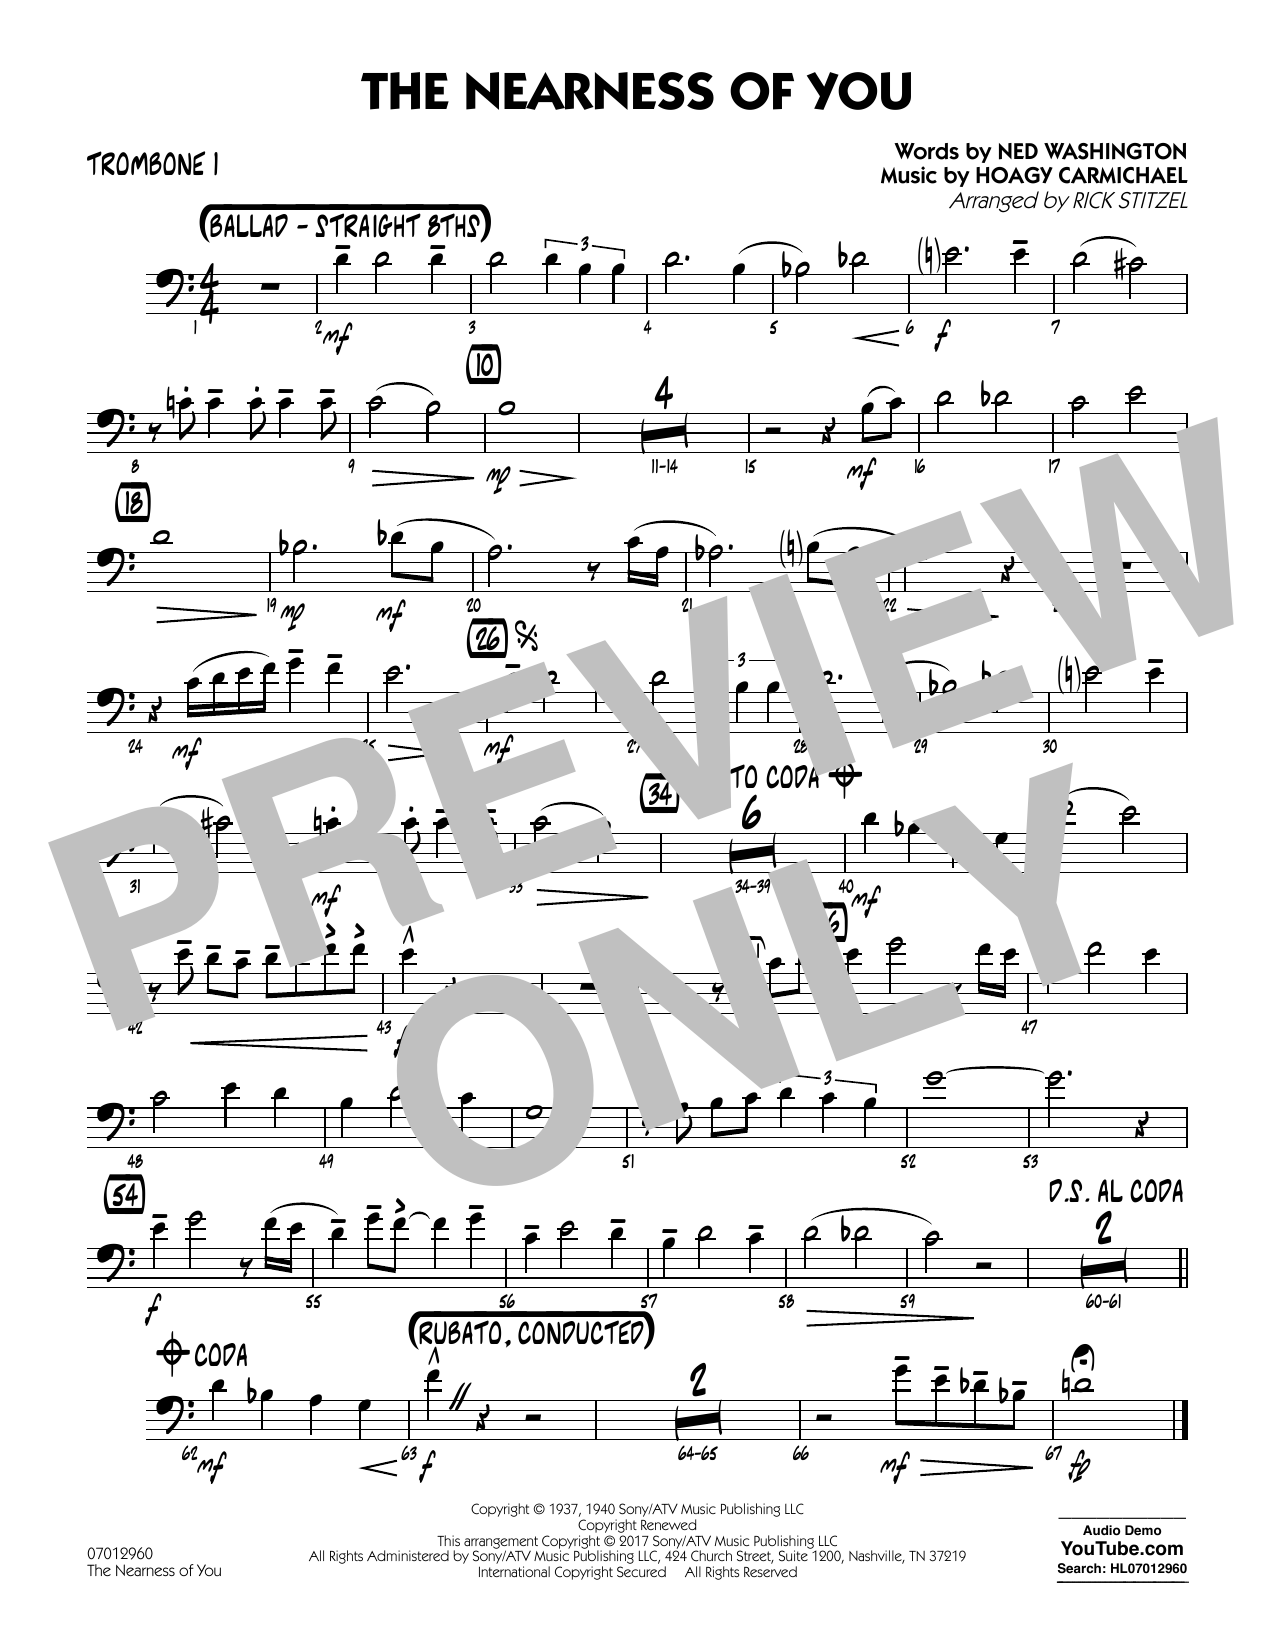 Rick Stitzel The Nearness of You (Key: C) - Trombone 1 sheet music notes and chords. Download Printable PDF.